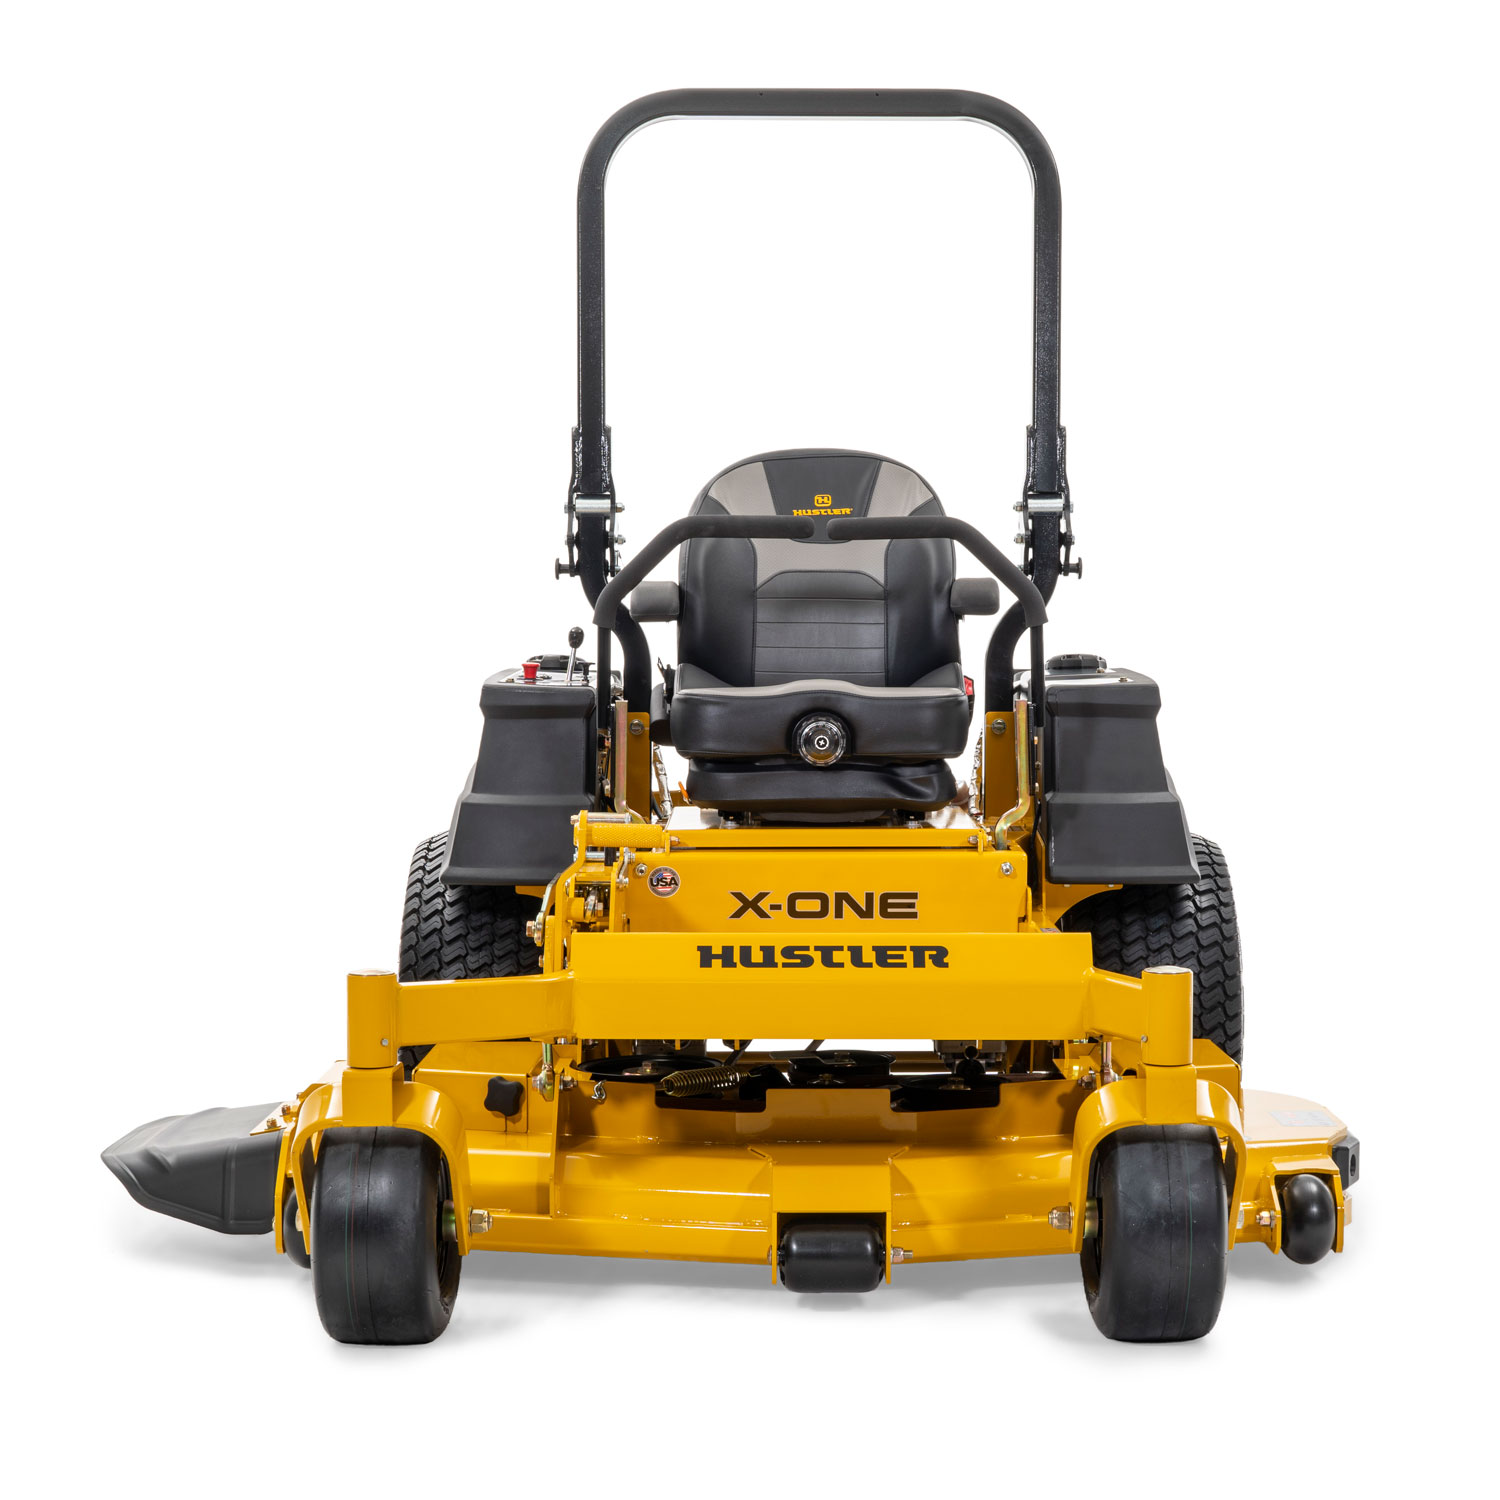 Image of the front of a yellow zero-turn mower